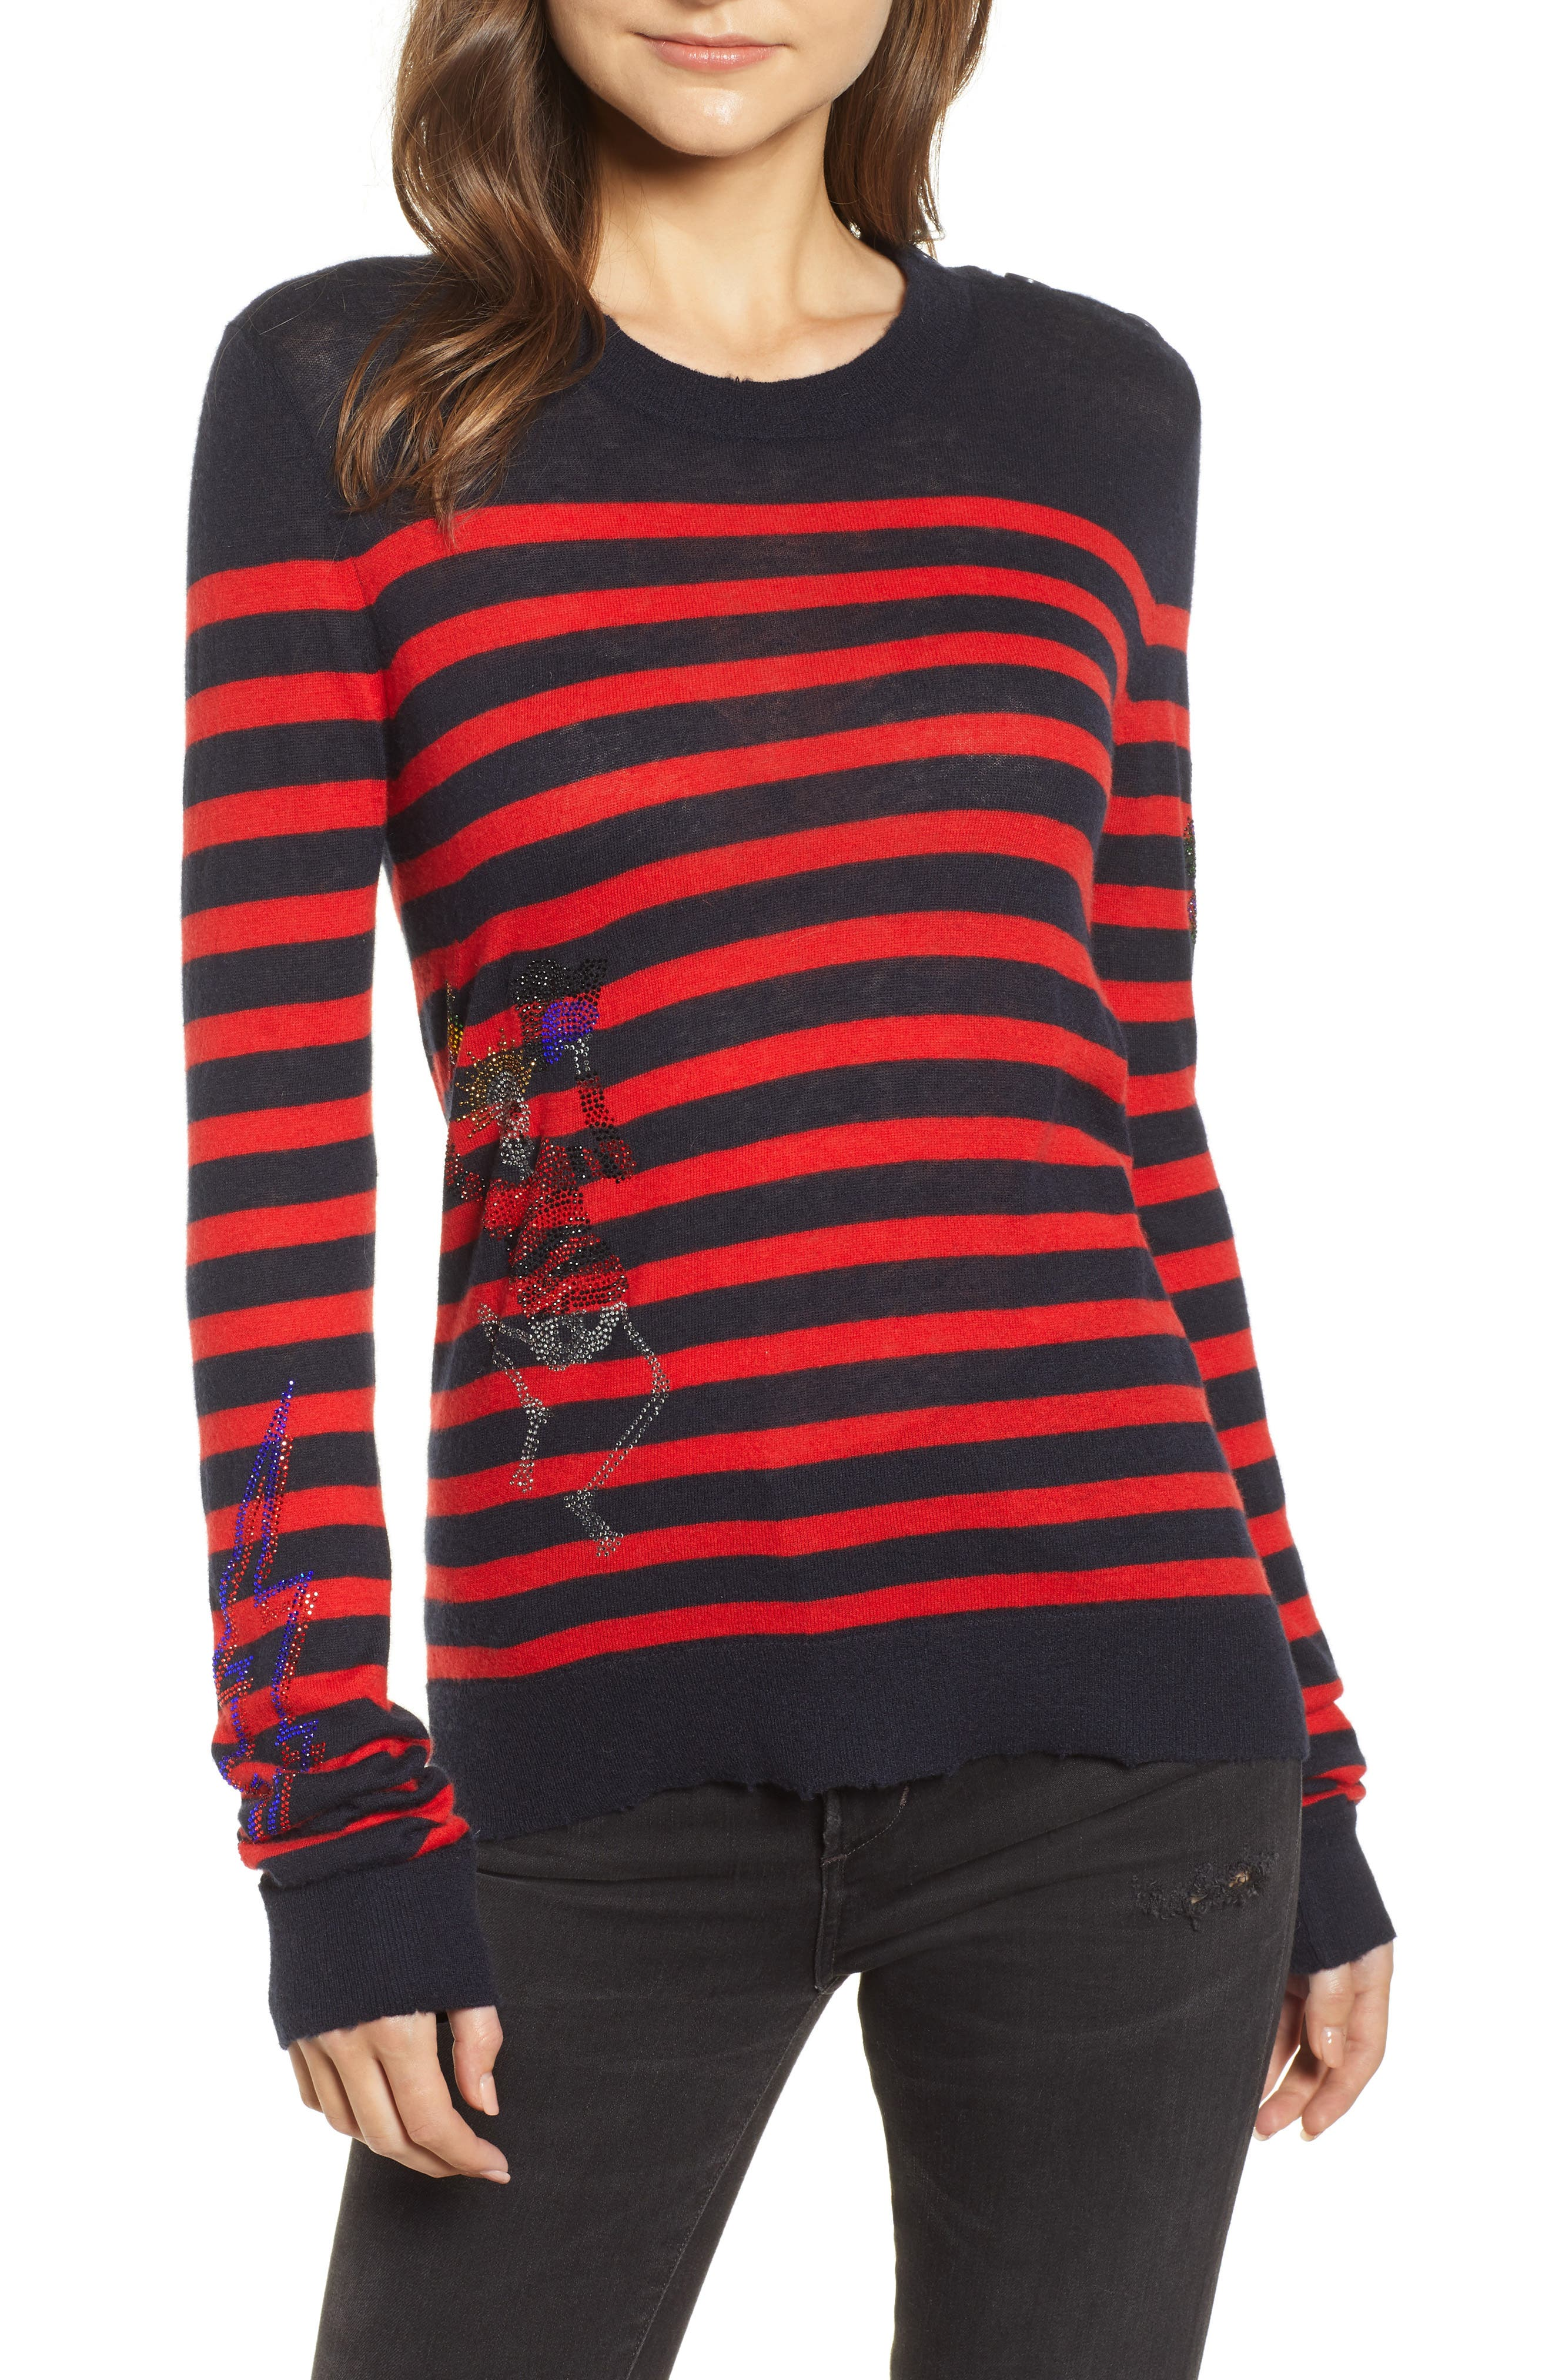 Delly Bis Cashmere Sweater,                         Main,                         color, ENCRE/ ROUGE